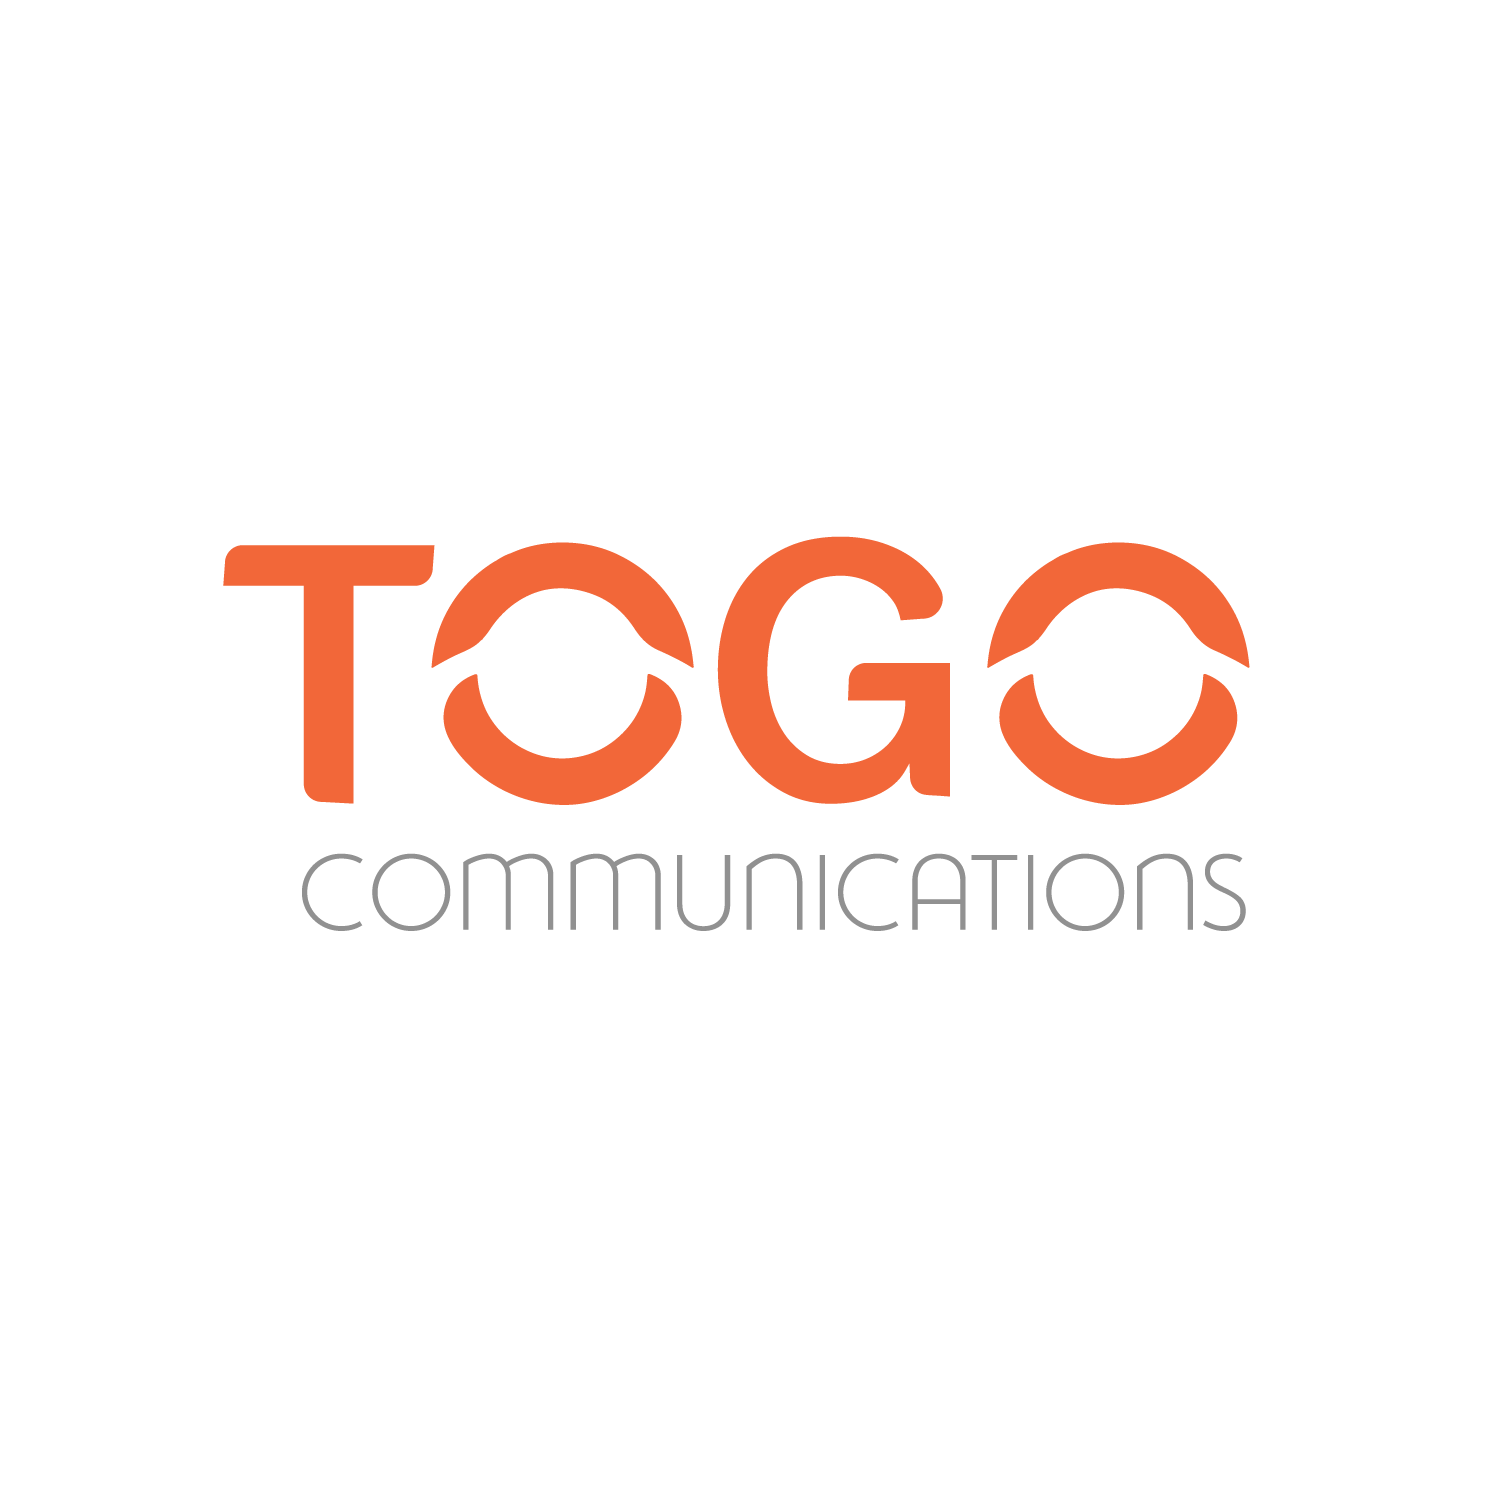 Togo communication